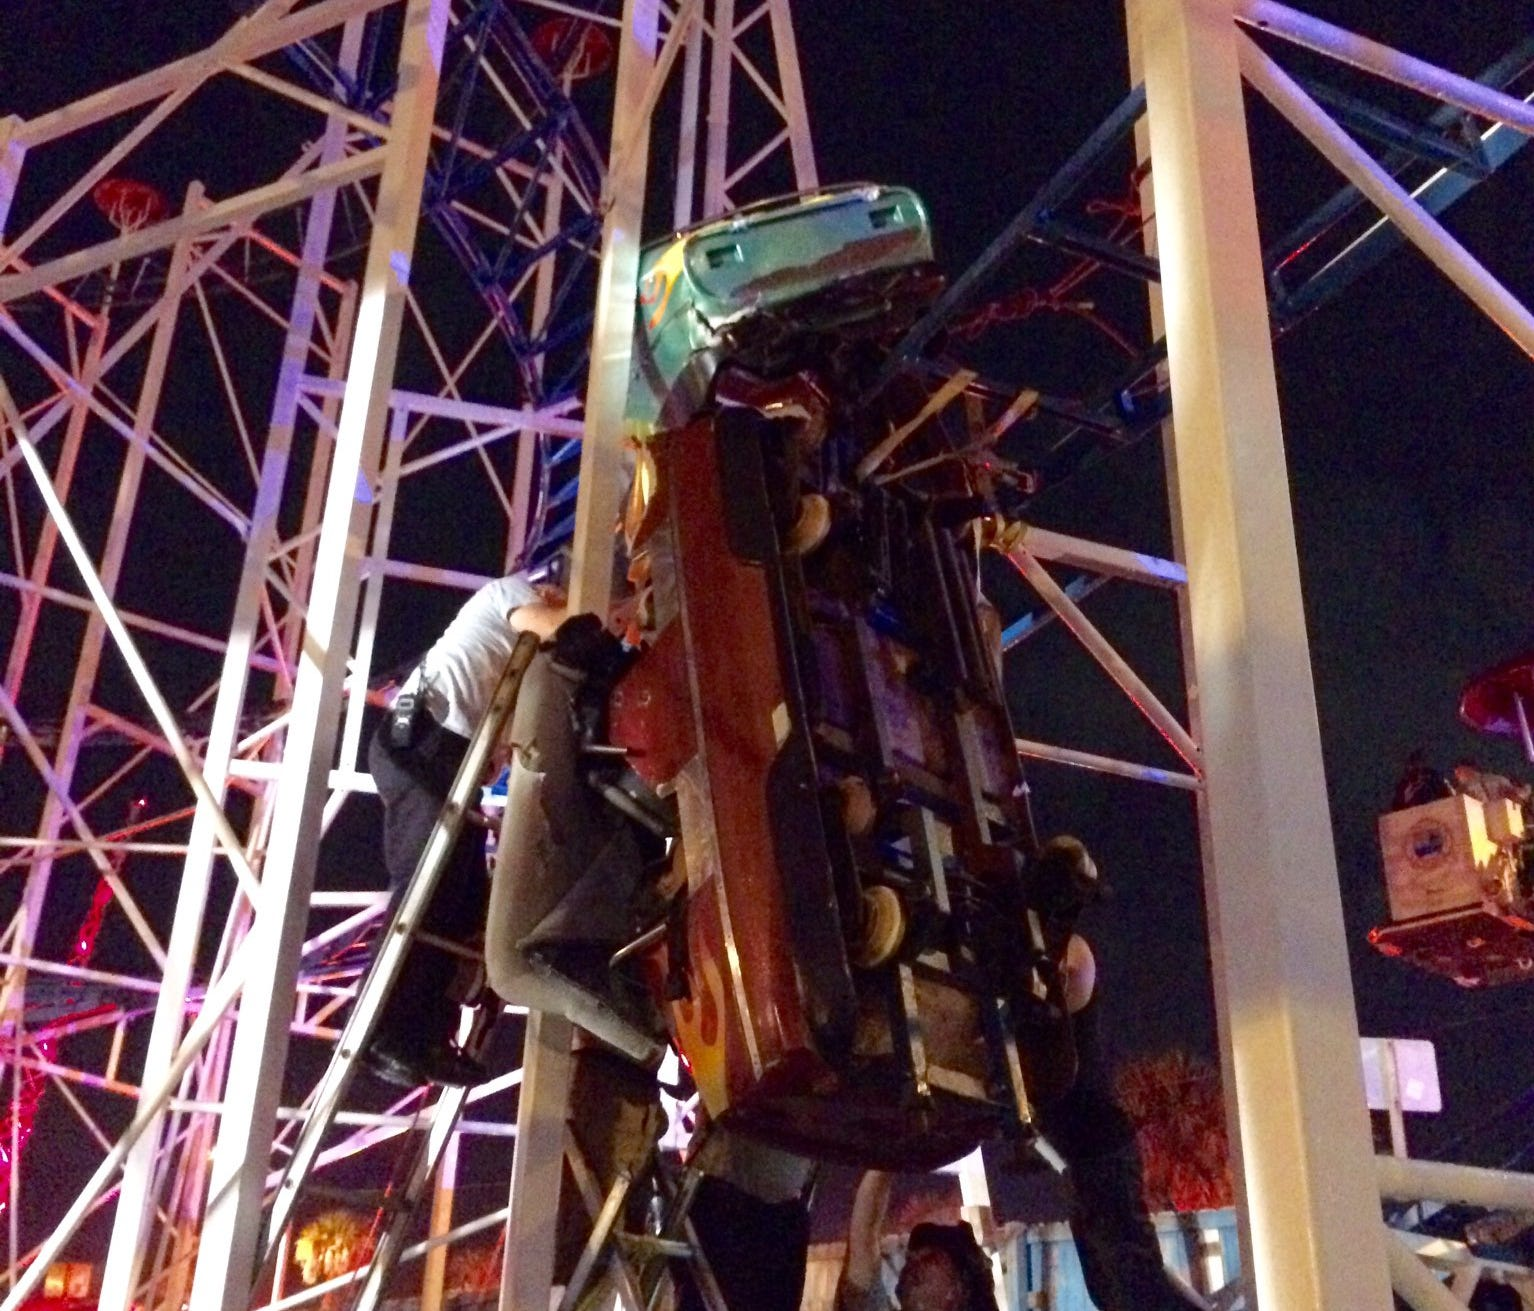 A roller coaster derailed at the Daytona Beach boardwalk in Florida on Thursday night, injuring multiple passengers and leaving a car dangling from the track.